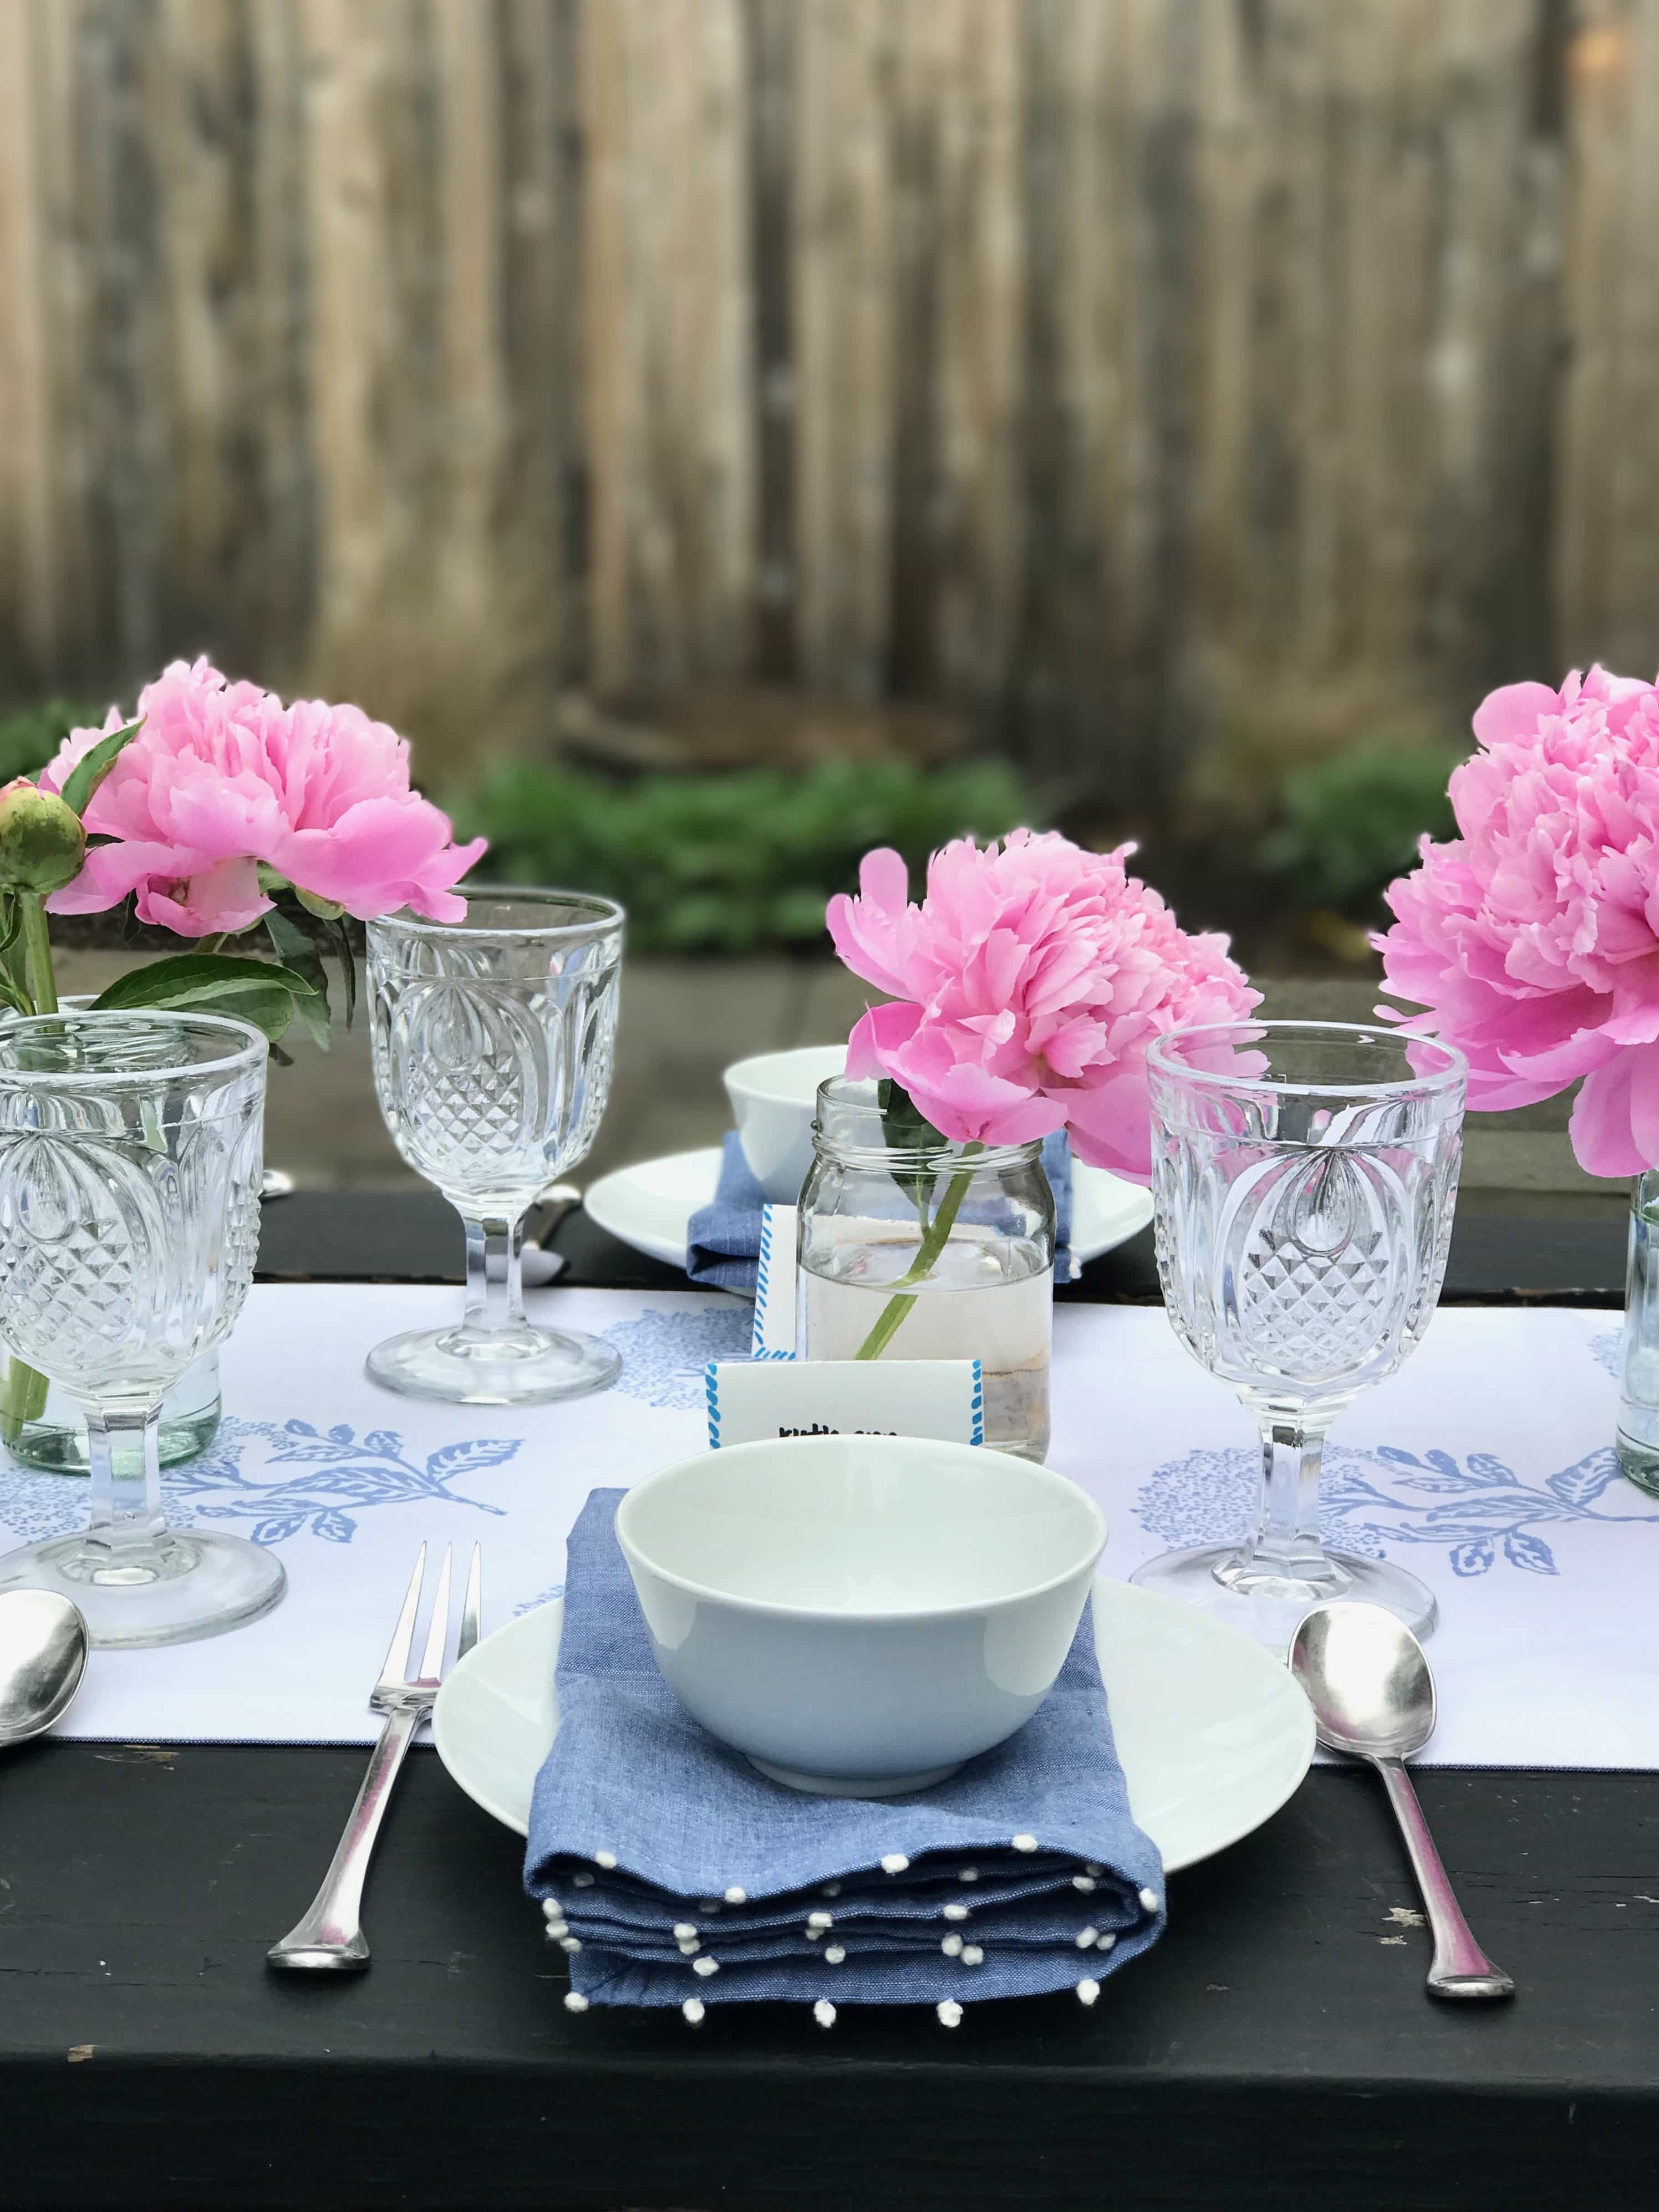 Tablescape for Spring with pink peonies and blue & white linens from Serena & Lily